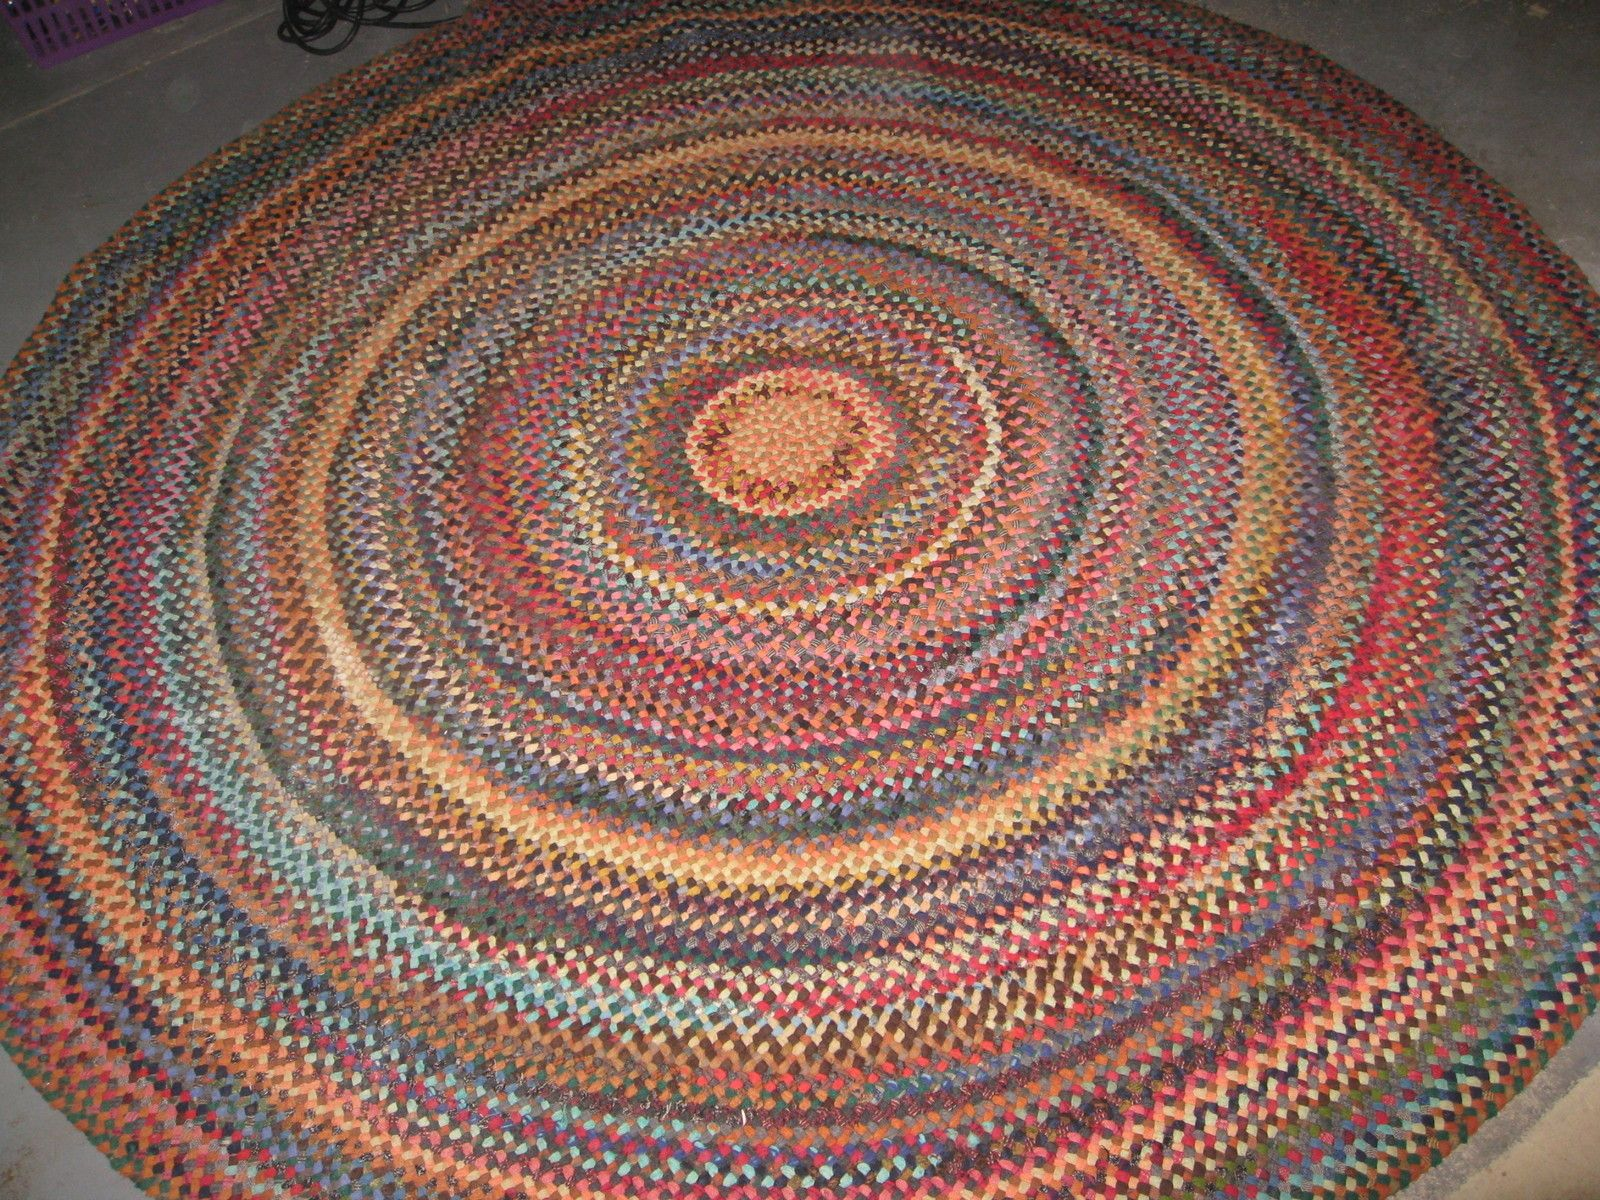 Gorgeous Vintage Multi Colored Round Wool Braided Rug | EBay